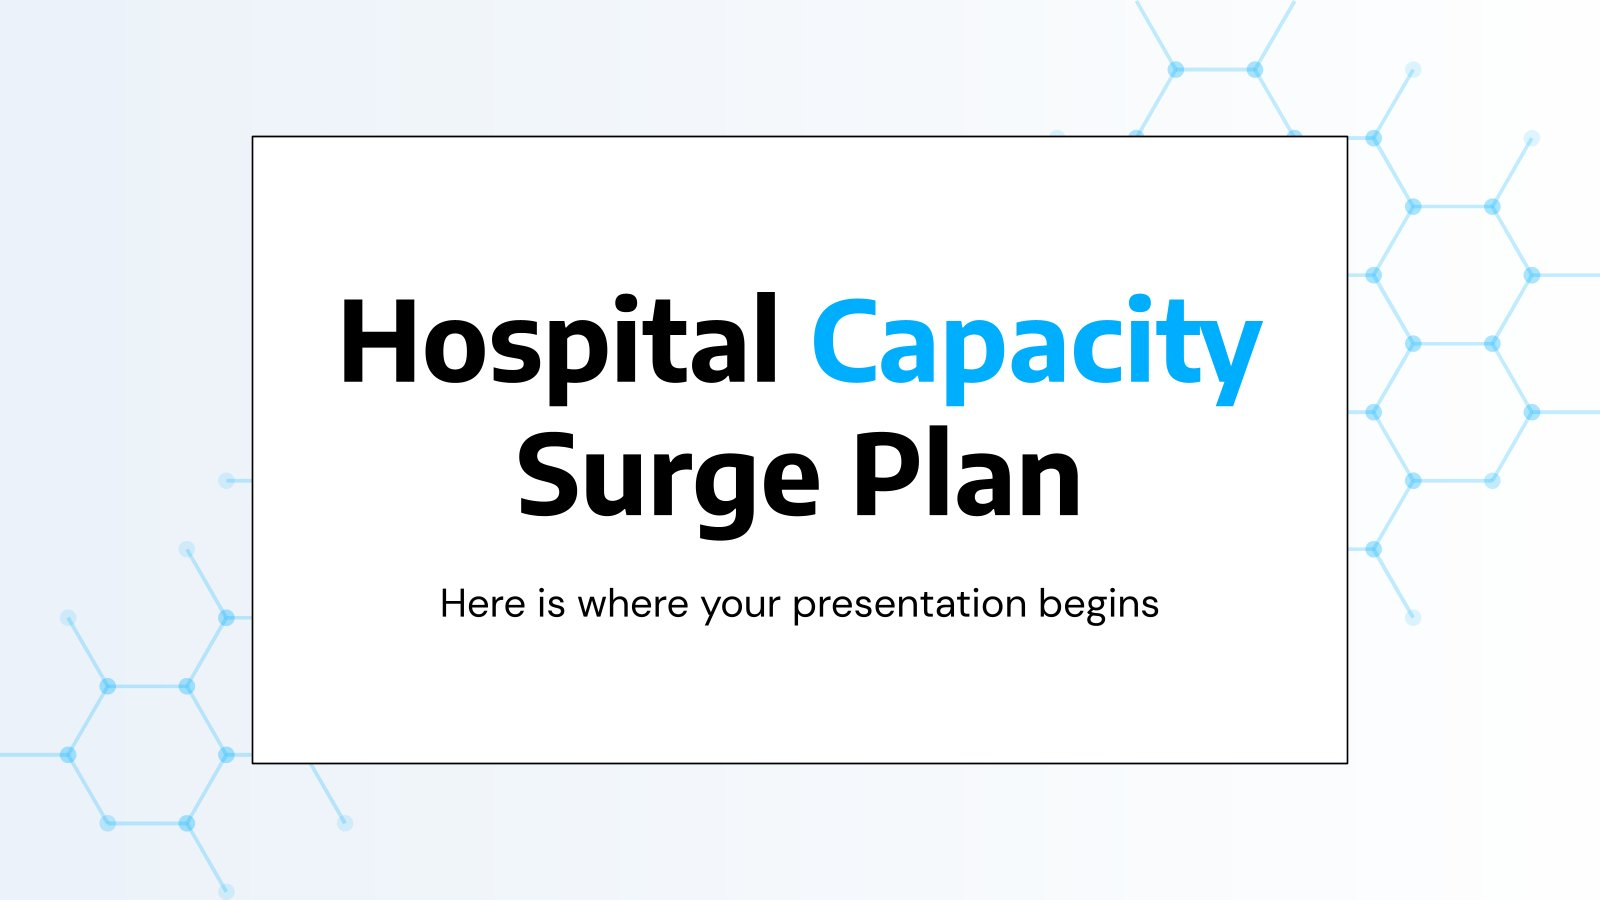 Hospital Capacity Surge Plan presentation template